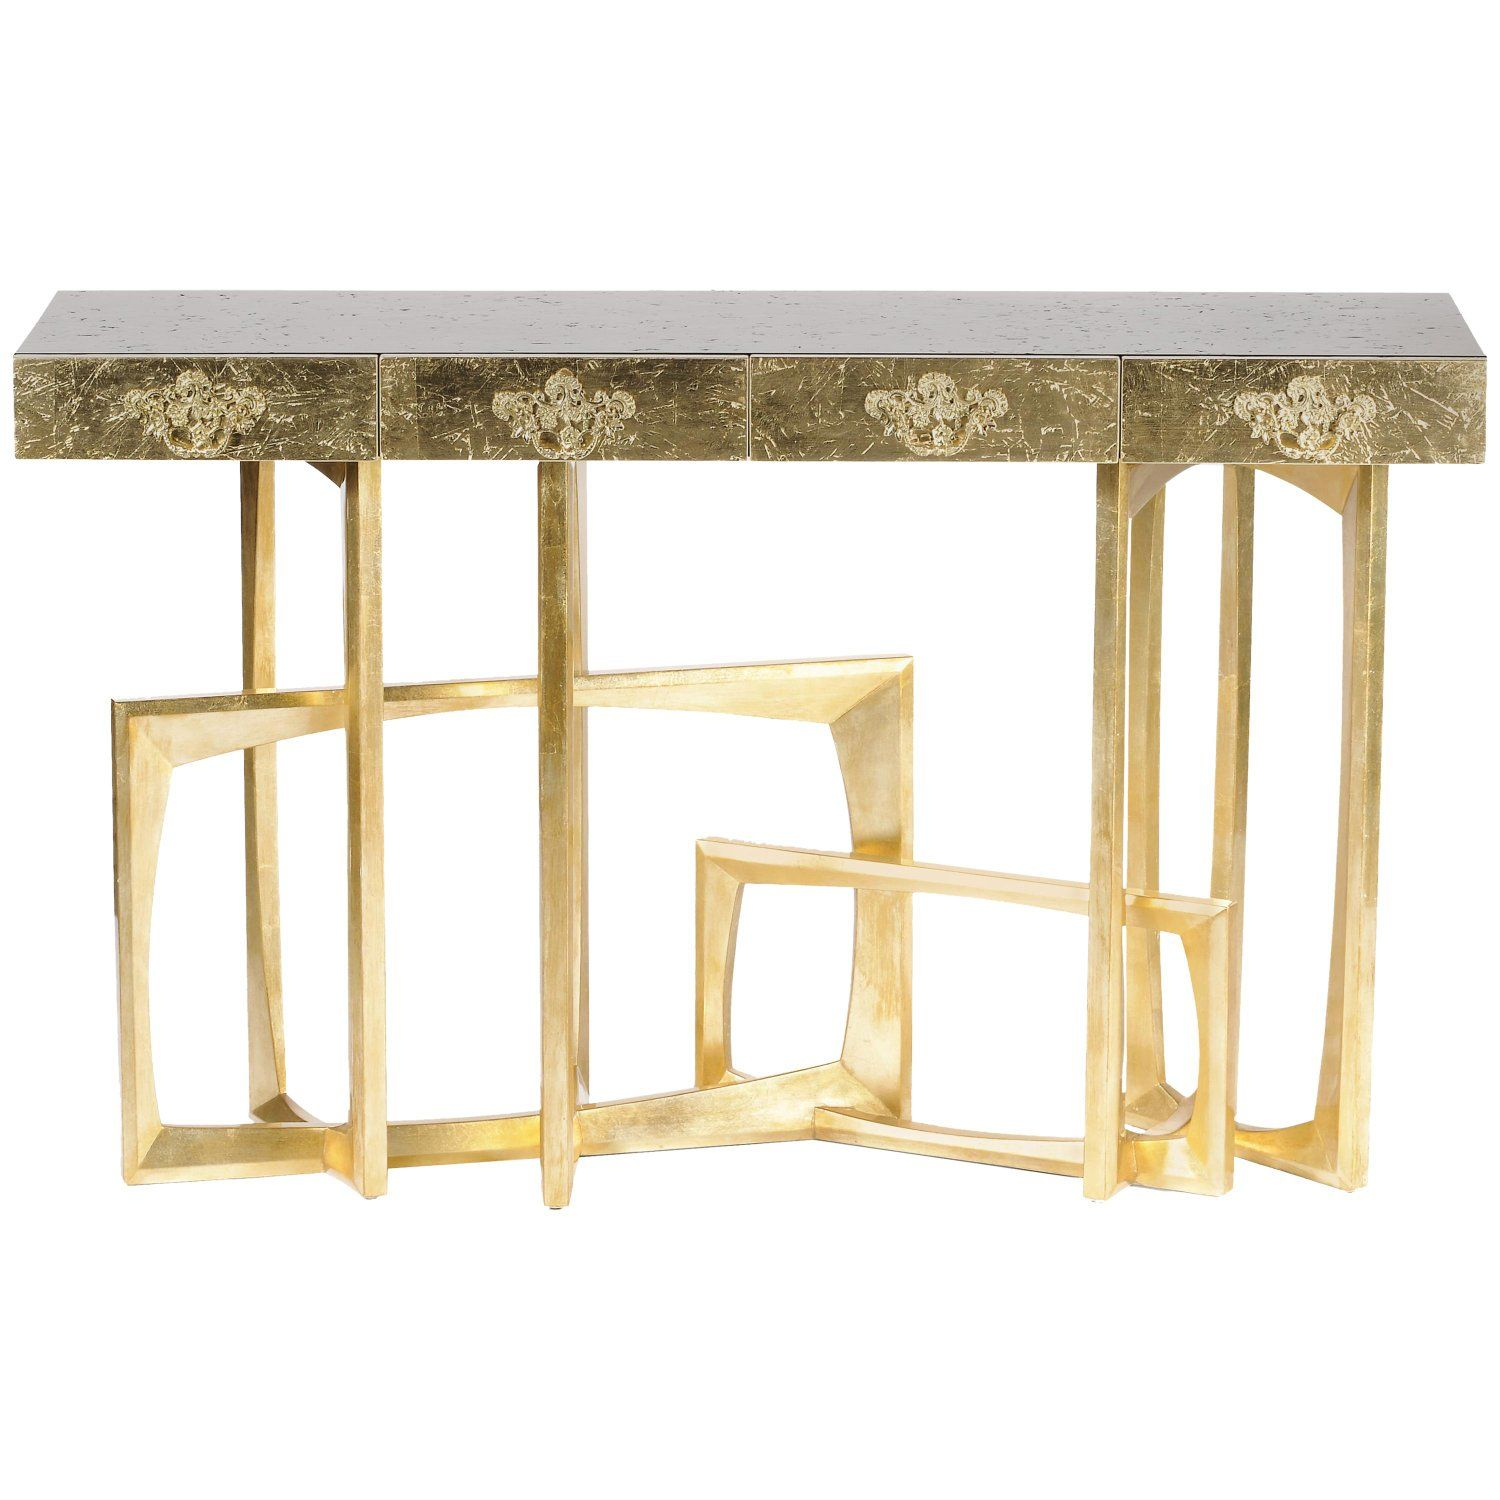 Metropolis console table with gold finish by boca do lobo in